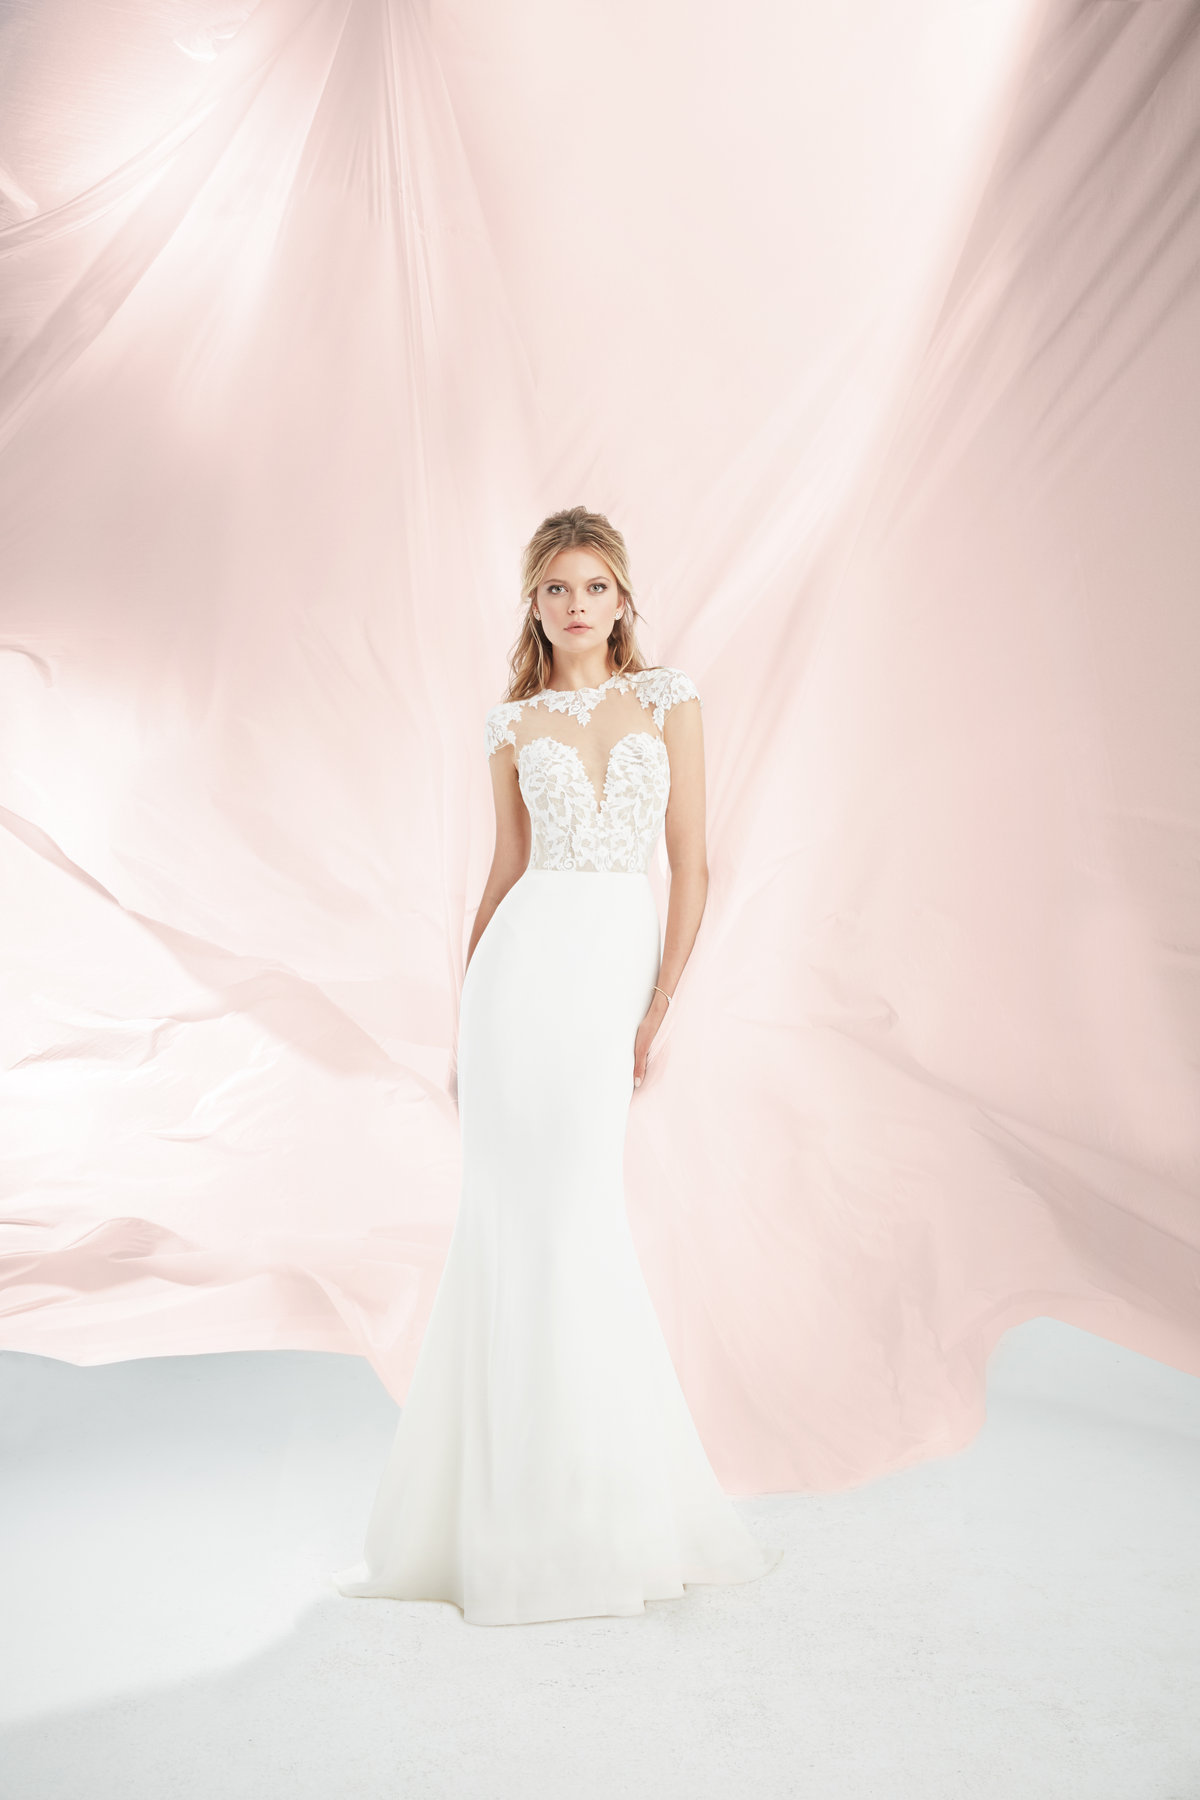 Bridal Gowns And Wedding Dresses By JLM Couture Style 1819 Daisy - Used Hayley Paige Wedding Dress